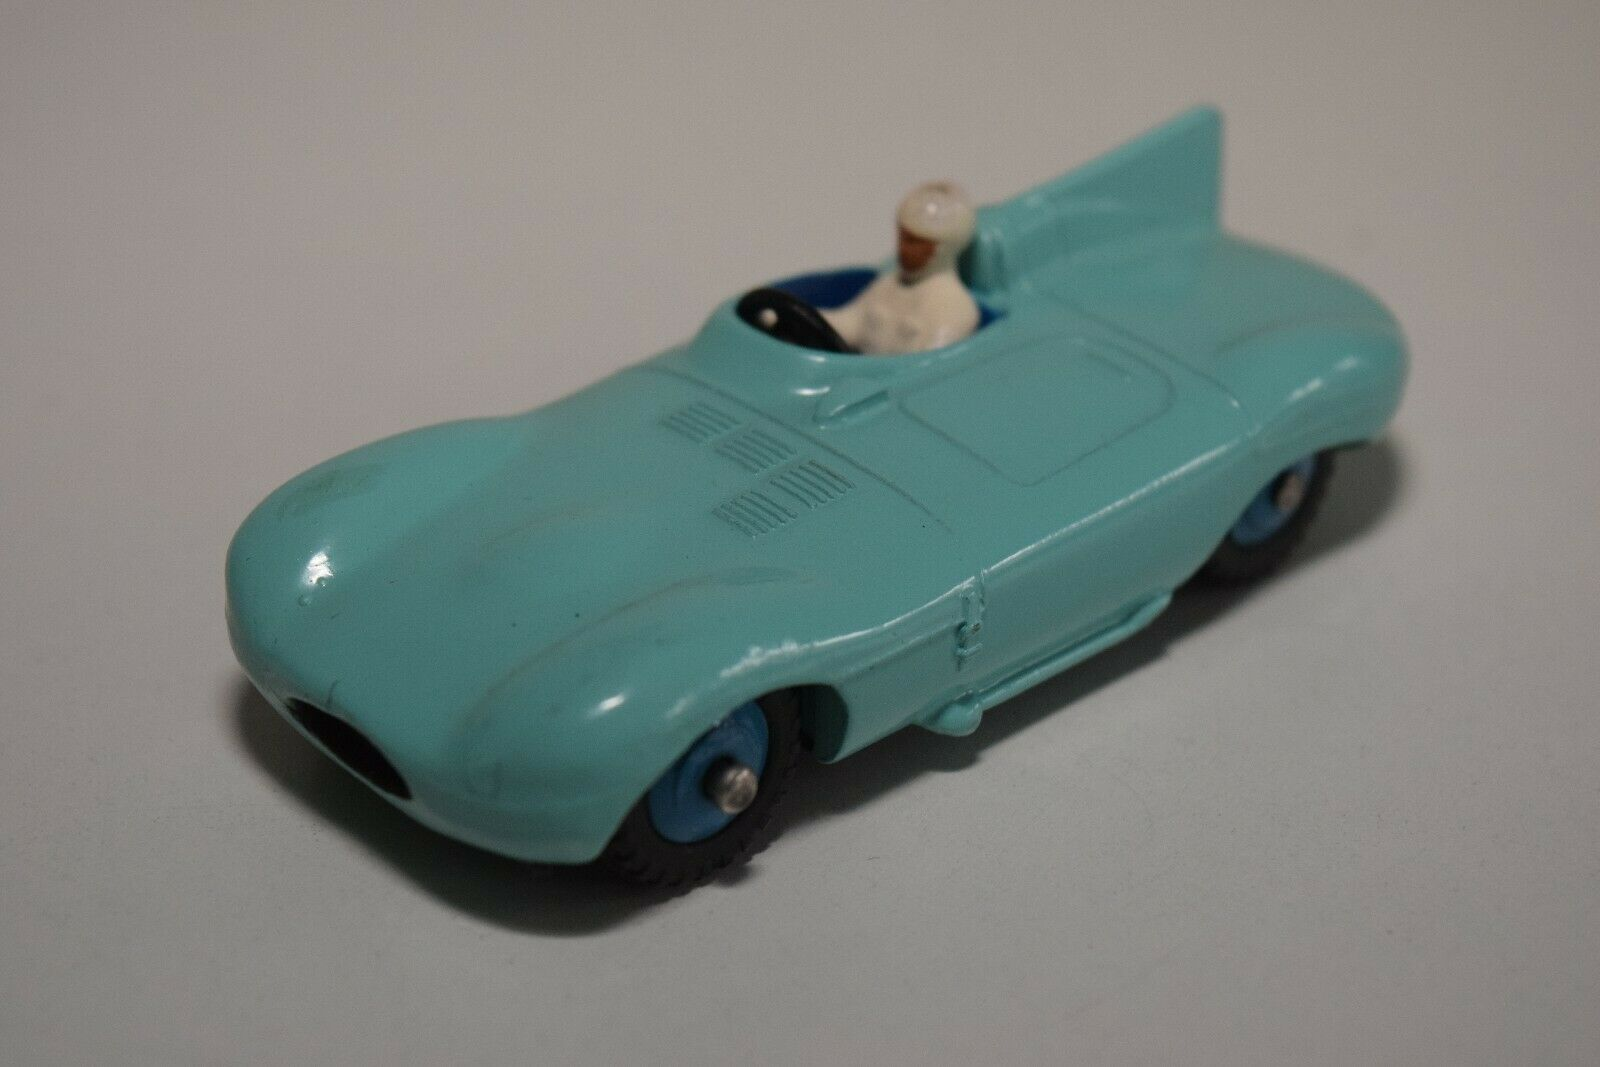 DD 1 43 DINKY TOYS 238 JAGUAR D-TYPE SPORTS CAR TURQOUISE VN MINT CONDITION